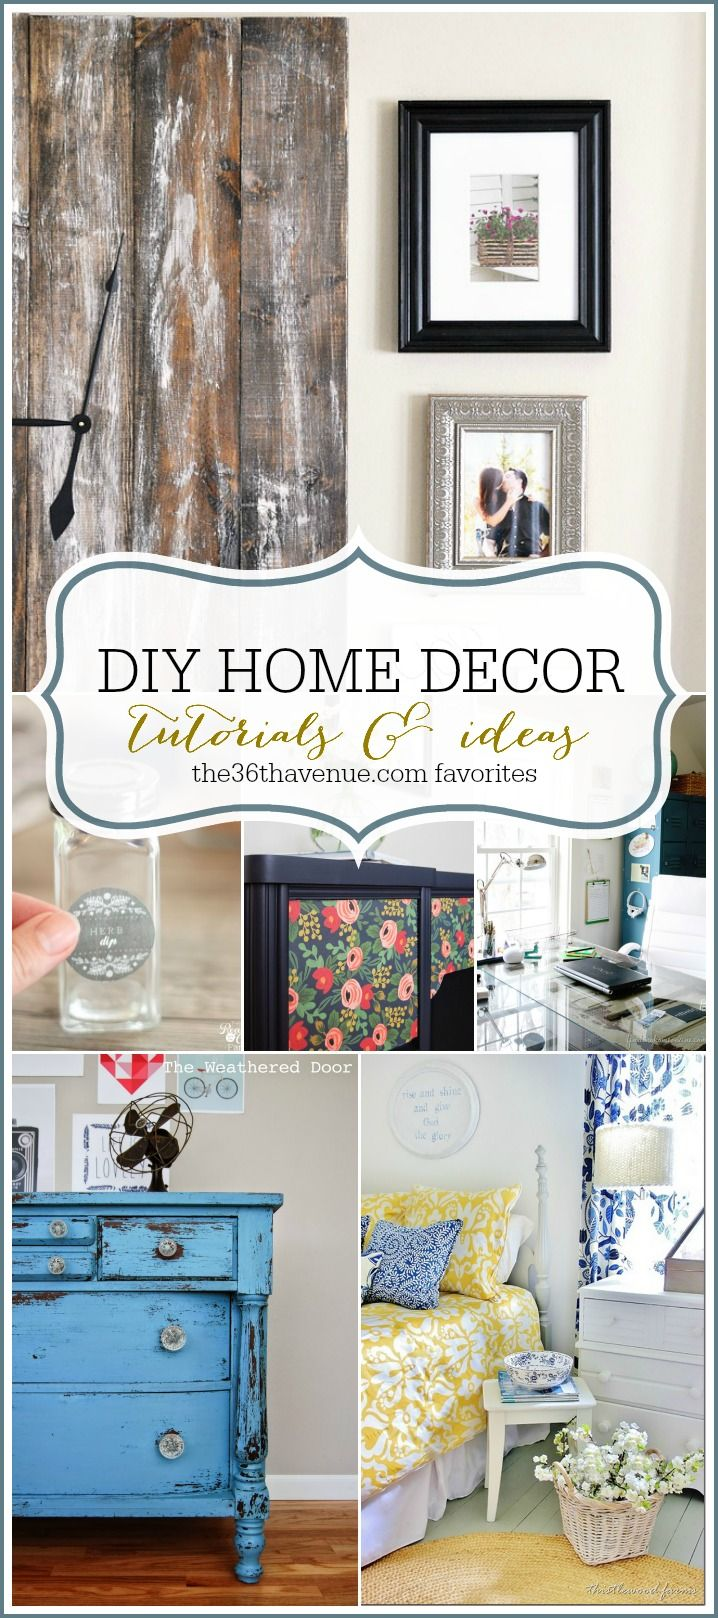 DIY Home Decor Ideas | Craft, Decorating and Hardware